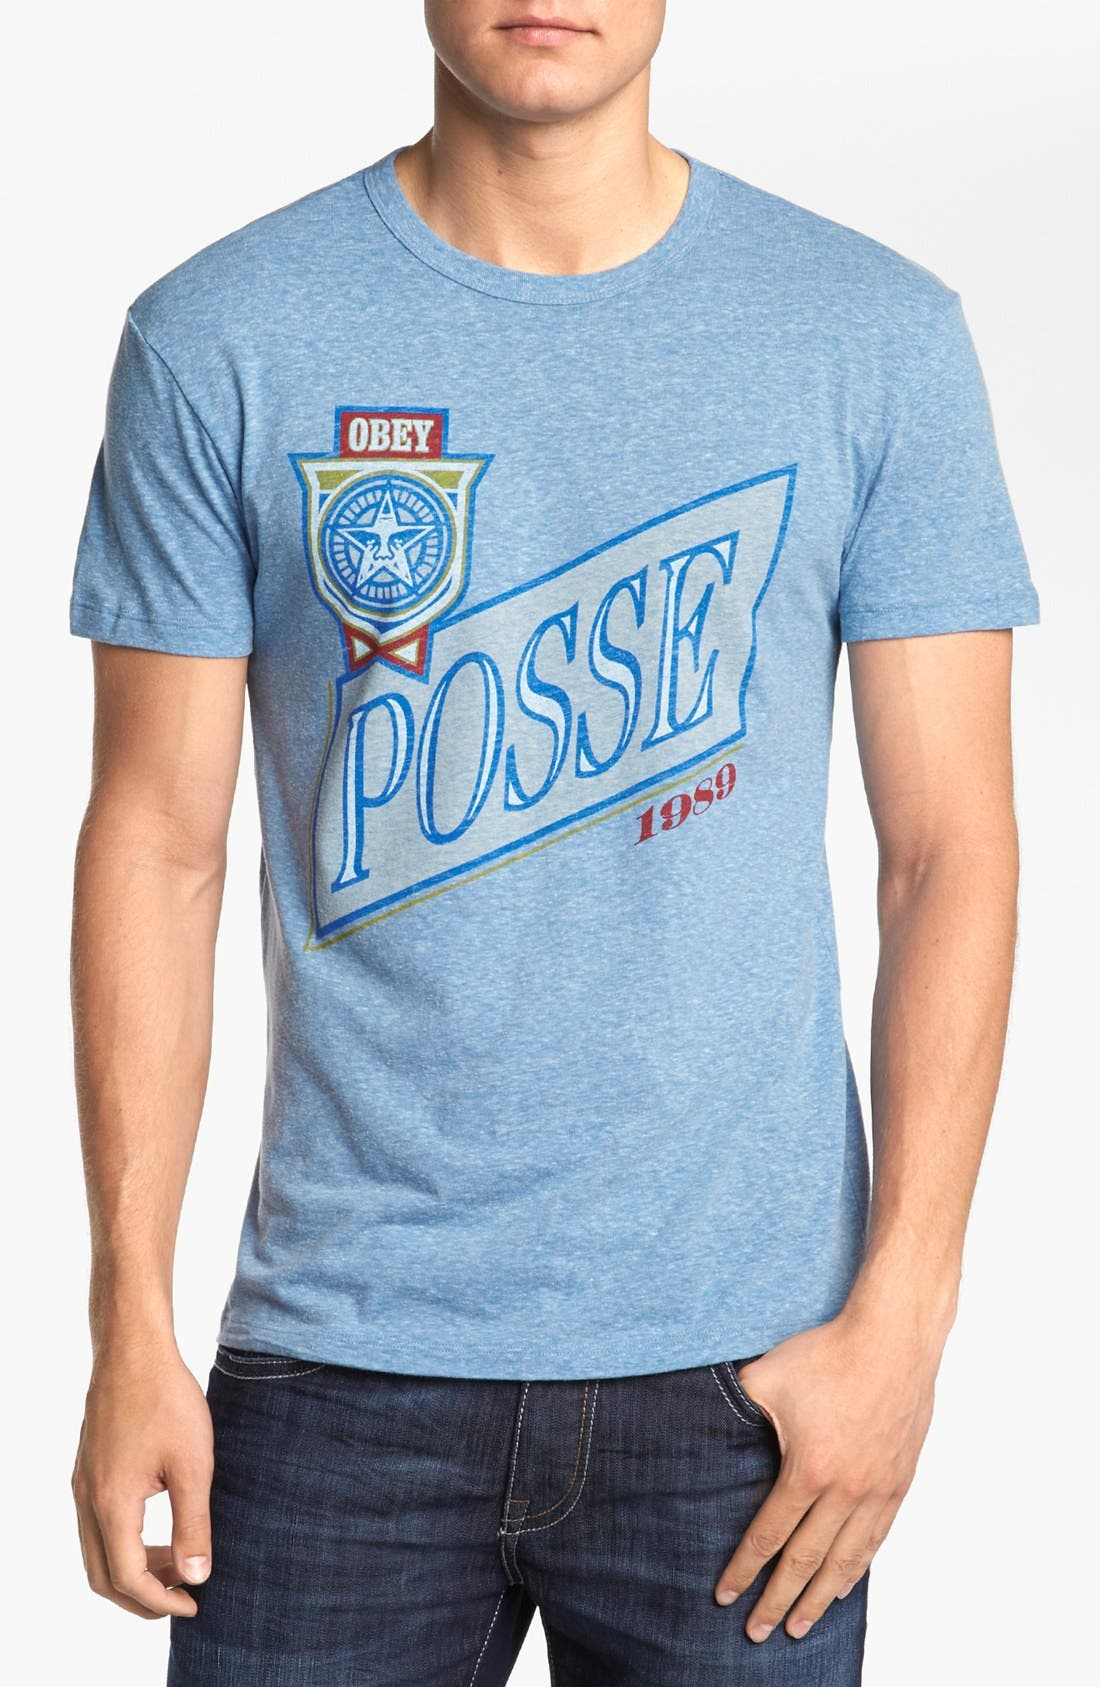 Alternate Image 1 Selected - Obey 'Posse Light' T-Shirt